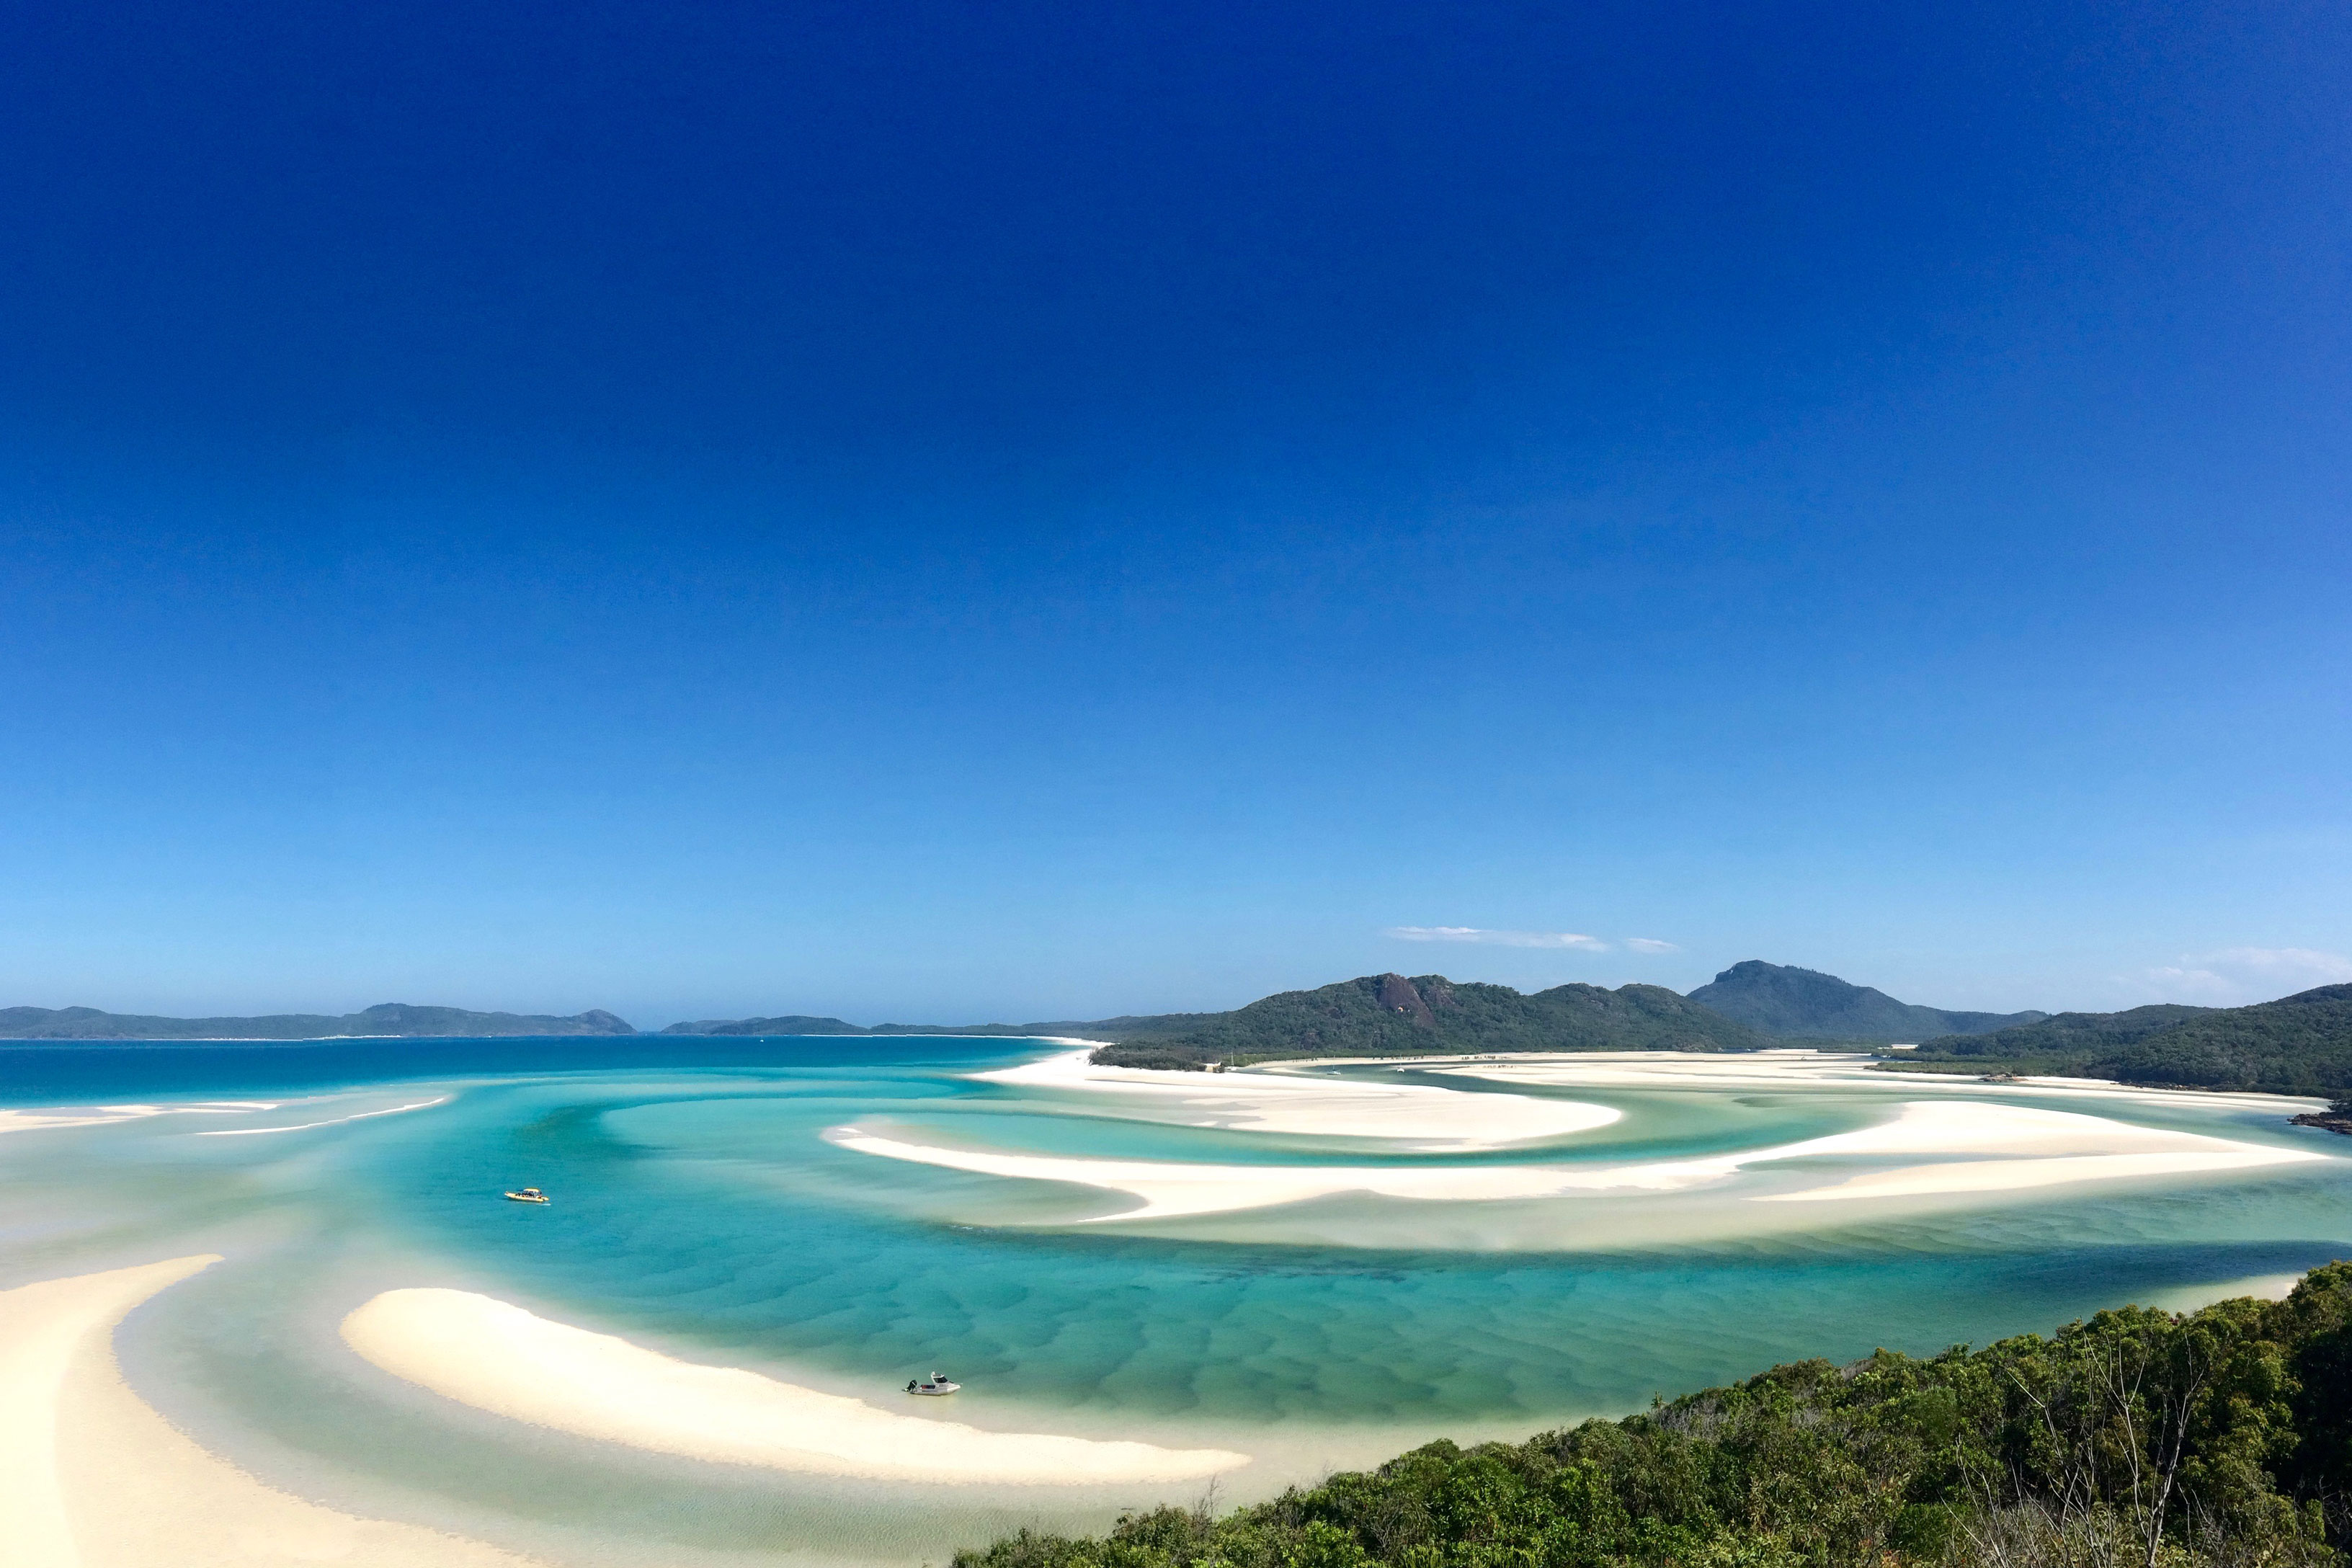 landscape of beautiful blue ocean waters and sand